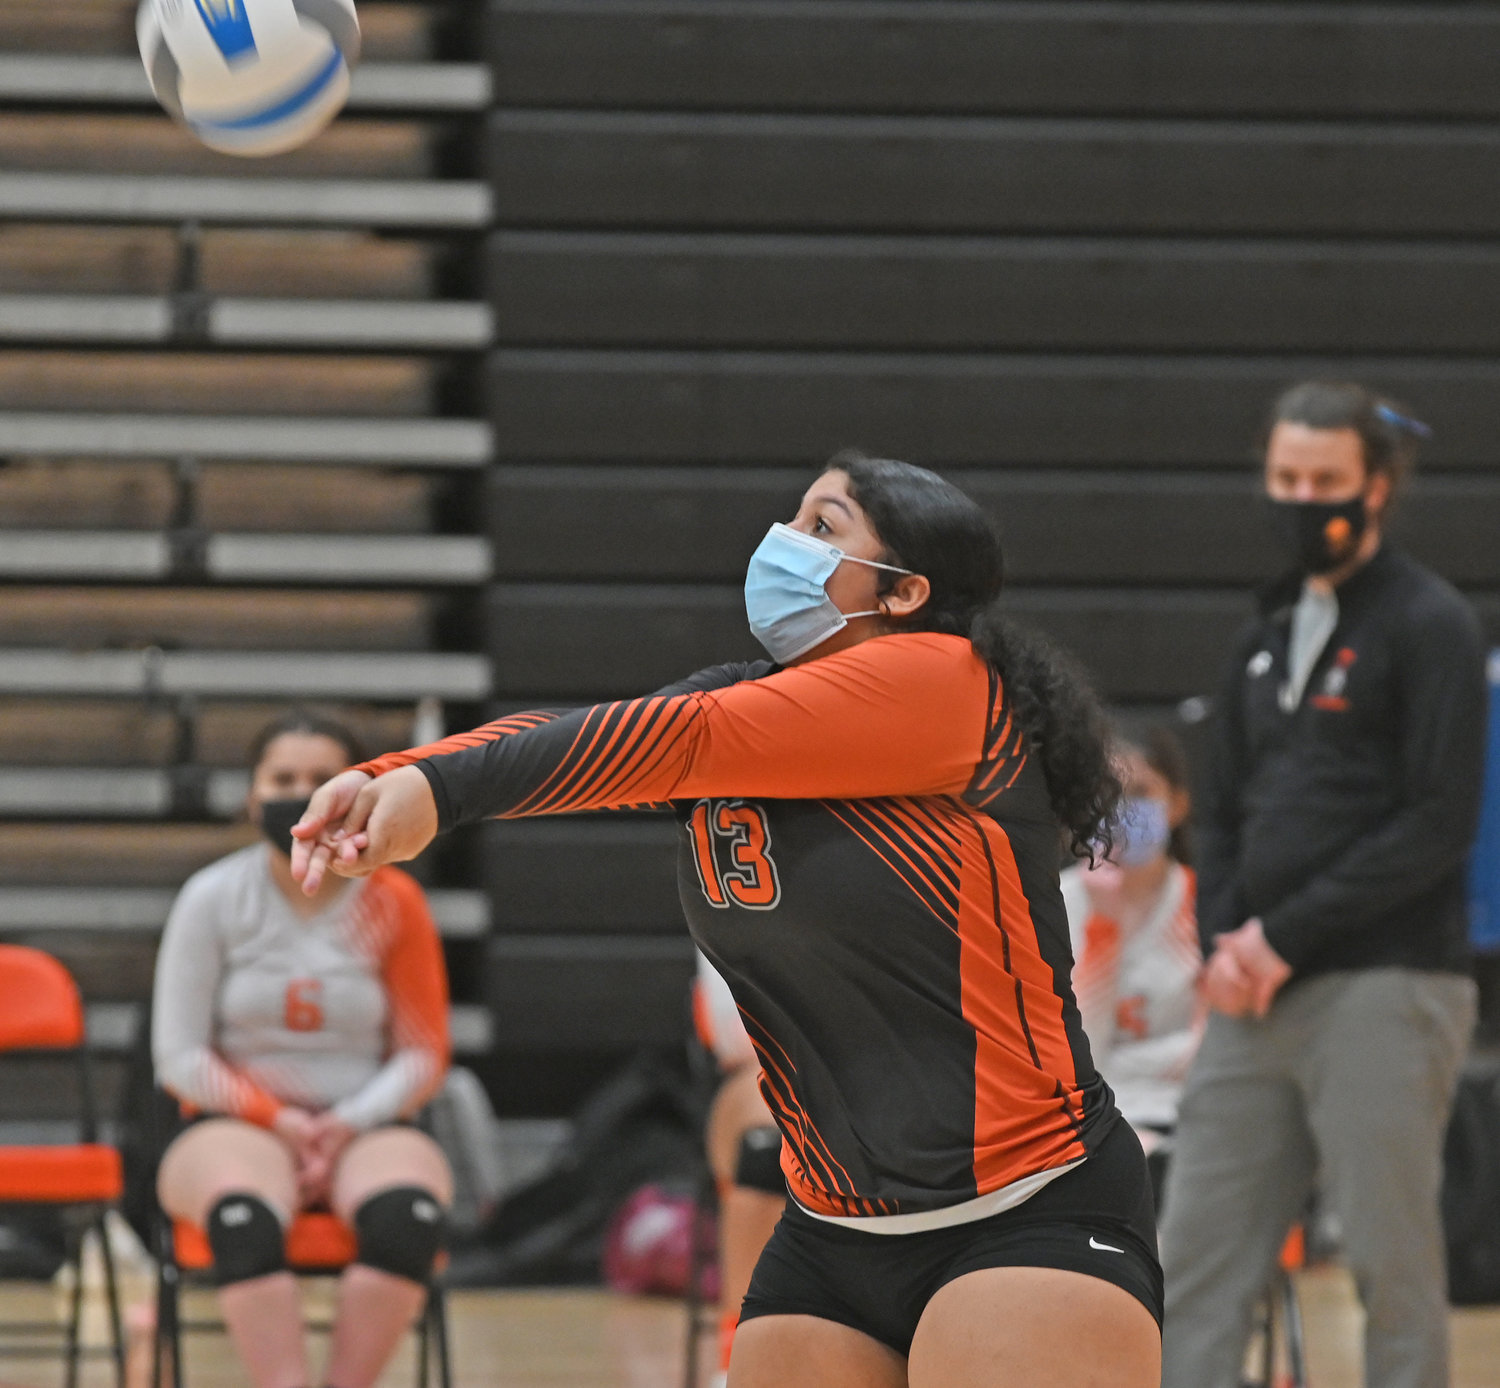 BUMP — Rome Free Academy senior Jamiah Moyer returns the serve during Monday night's Tri-Valley League volleyball match against New Hartford.